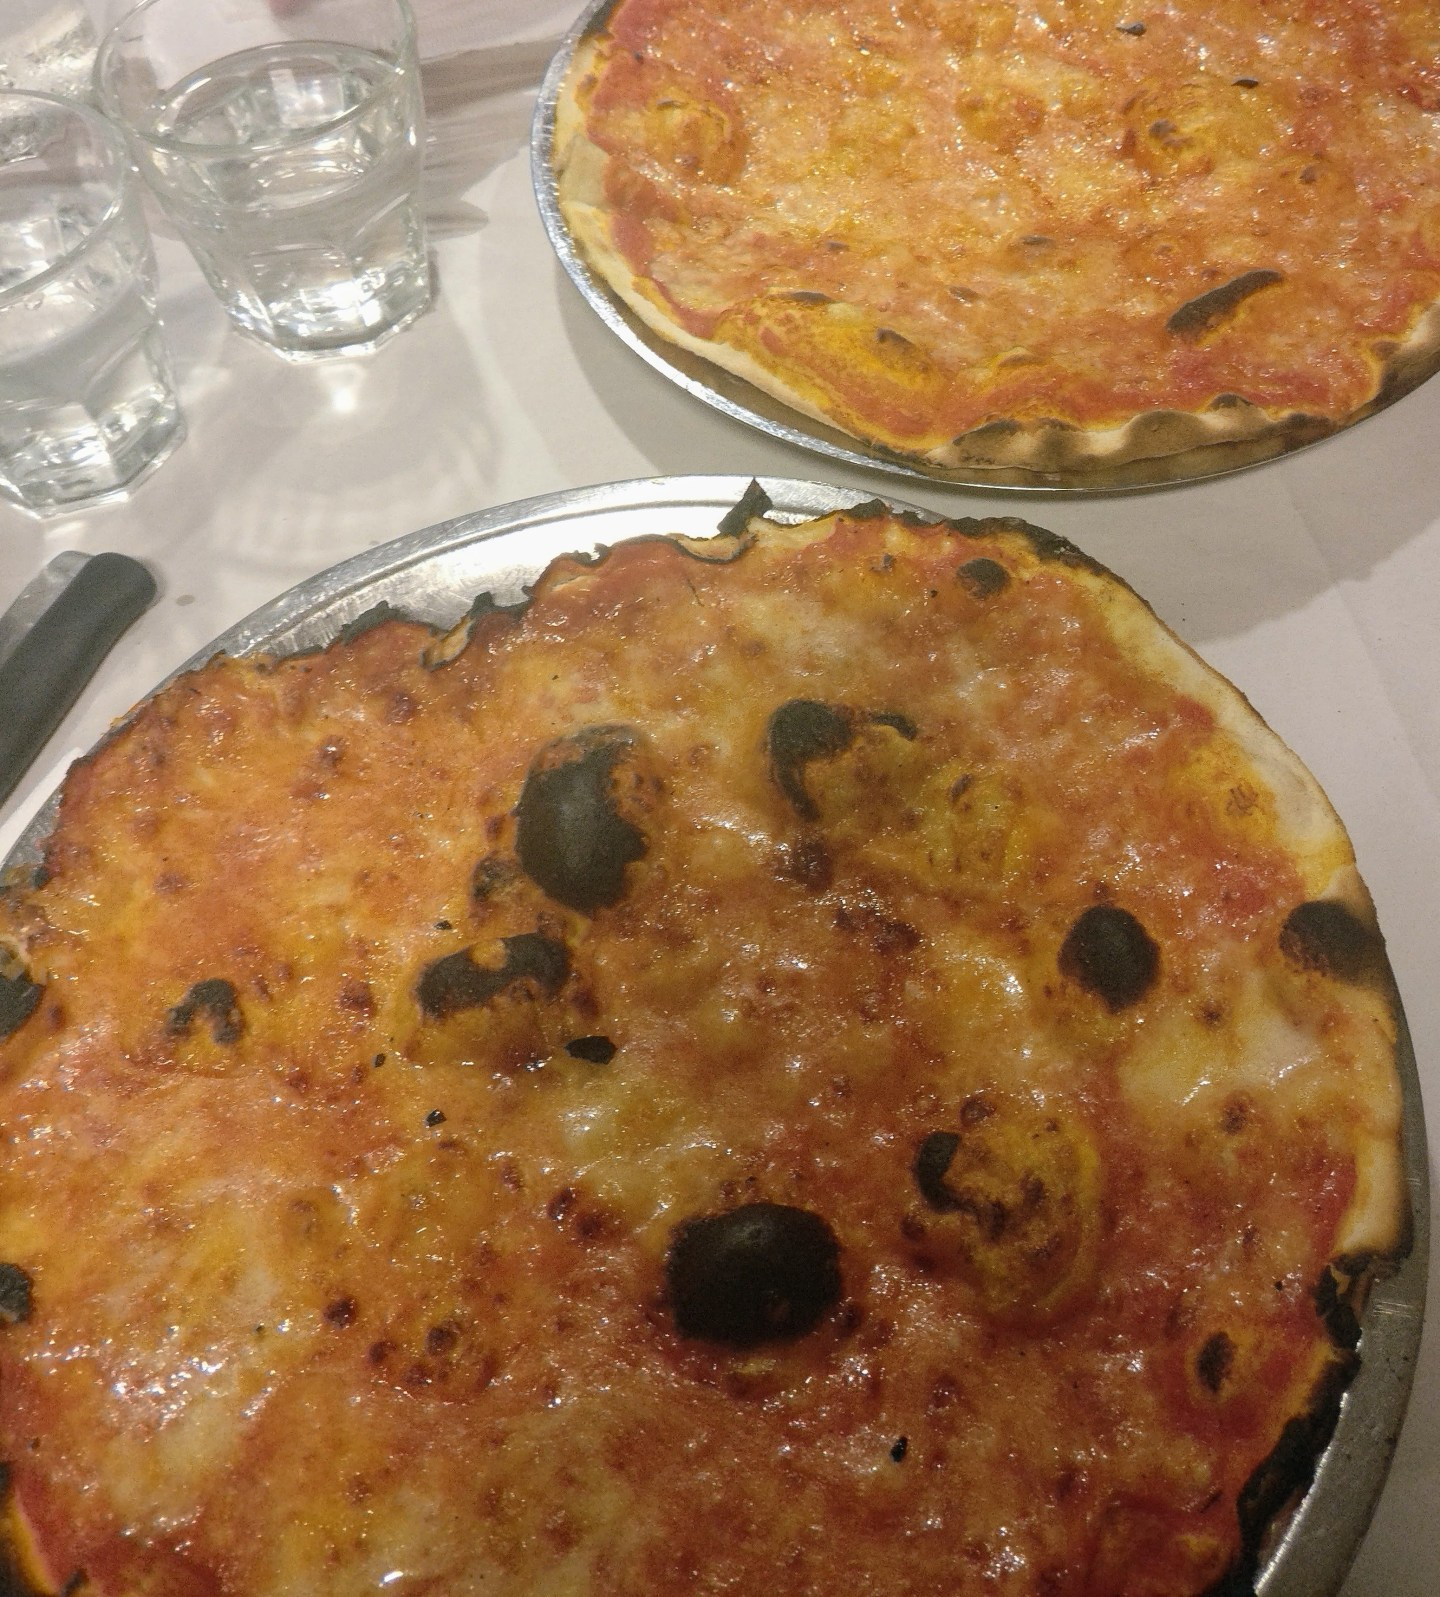 Pizza in Rome at night